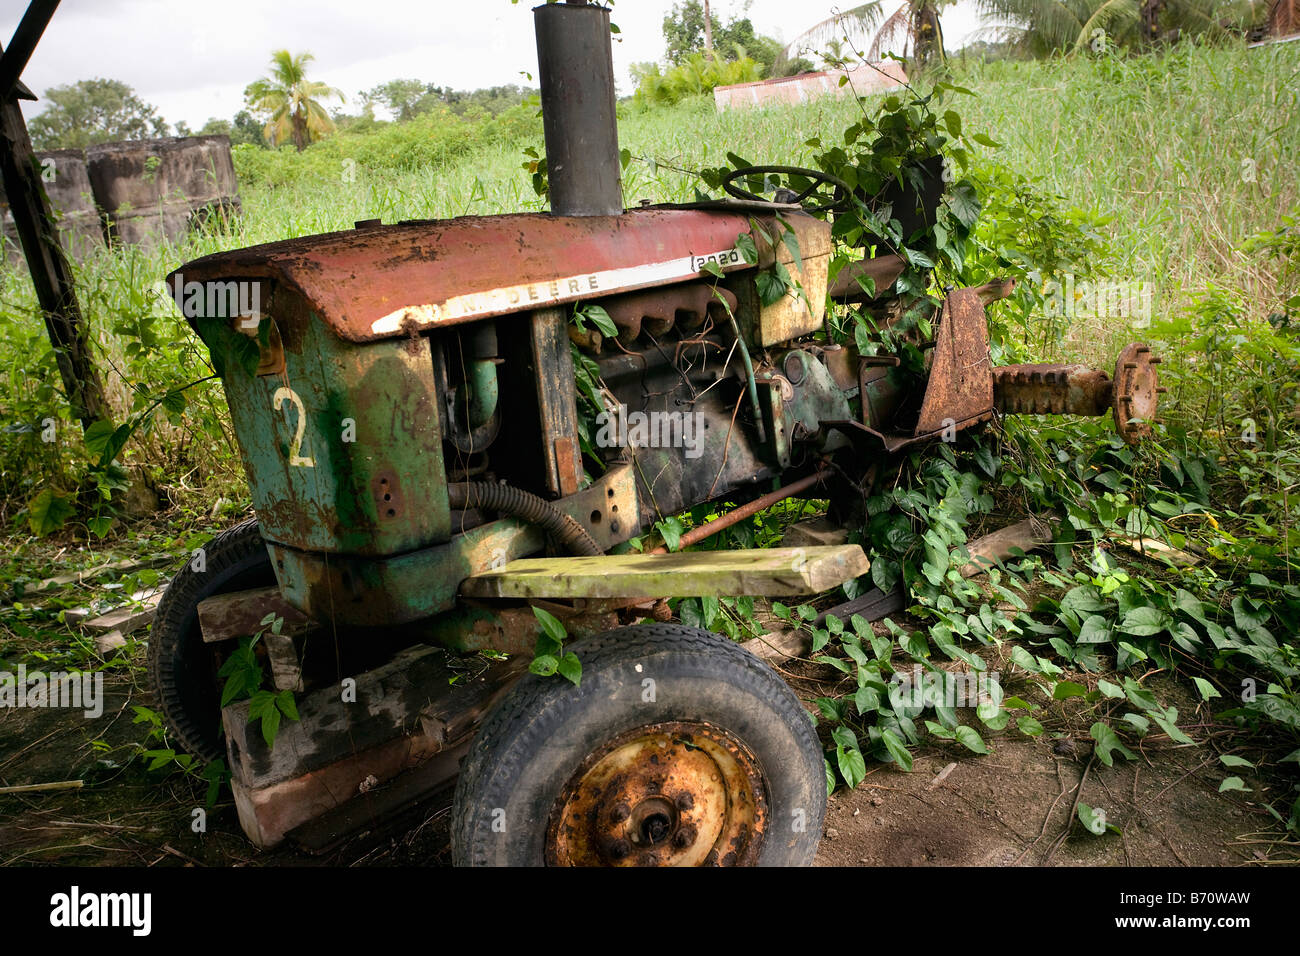 Suriname, Paramaribo, Restored plantation called Frederiksdorp at the Commewijne river. Old tractor. - Stock Image